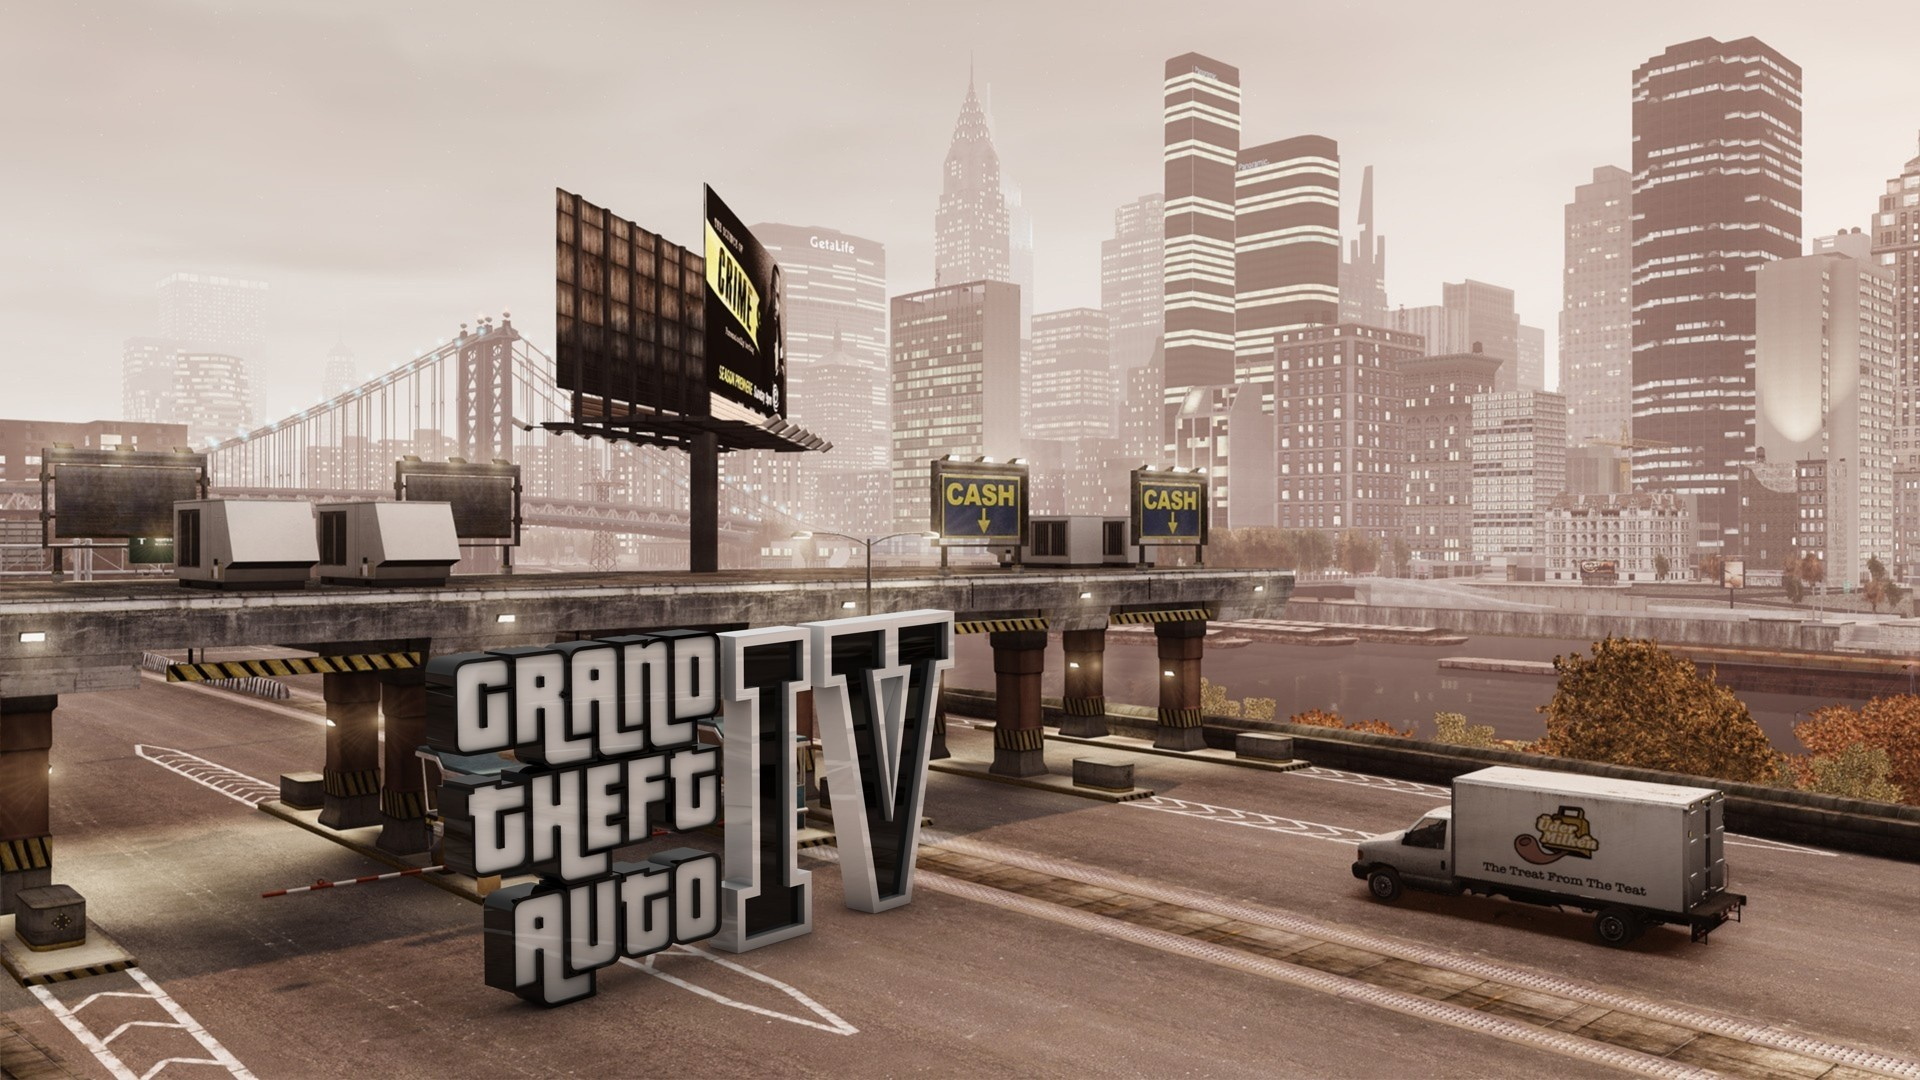 General 1920x1080 Grand Theft Auto IV video games video game art cityscape PC gaming